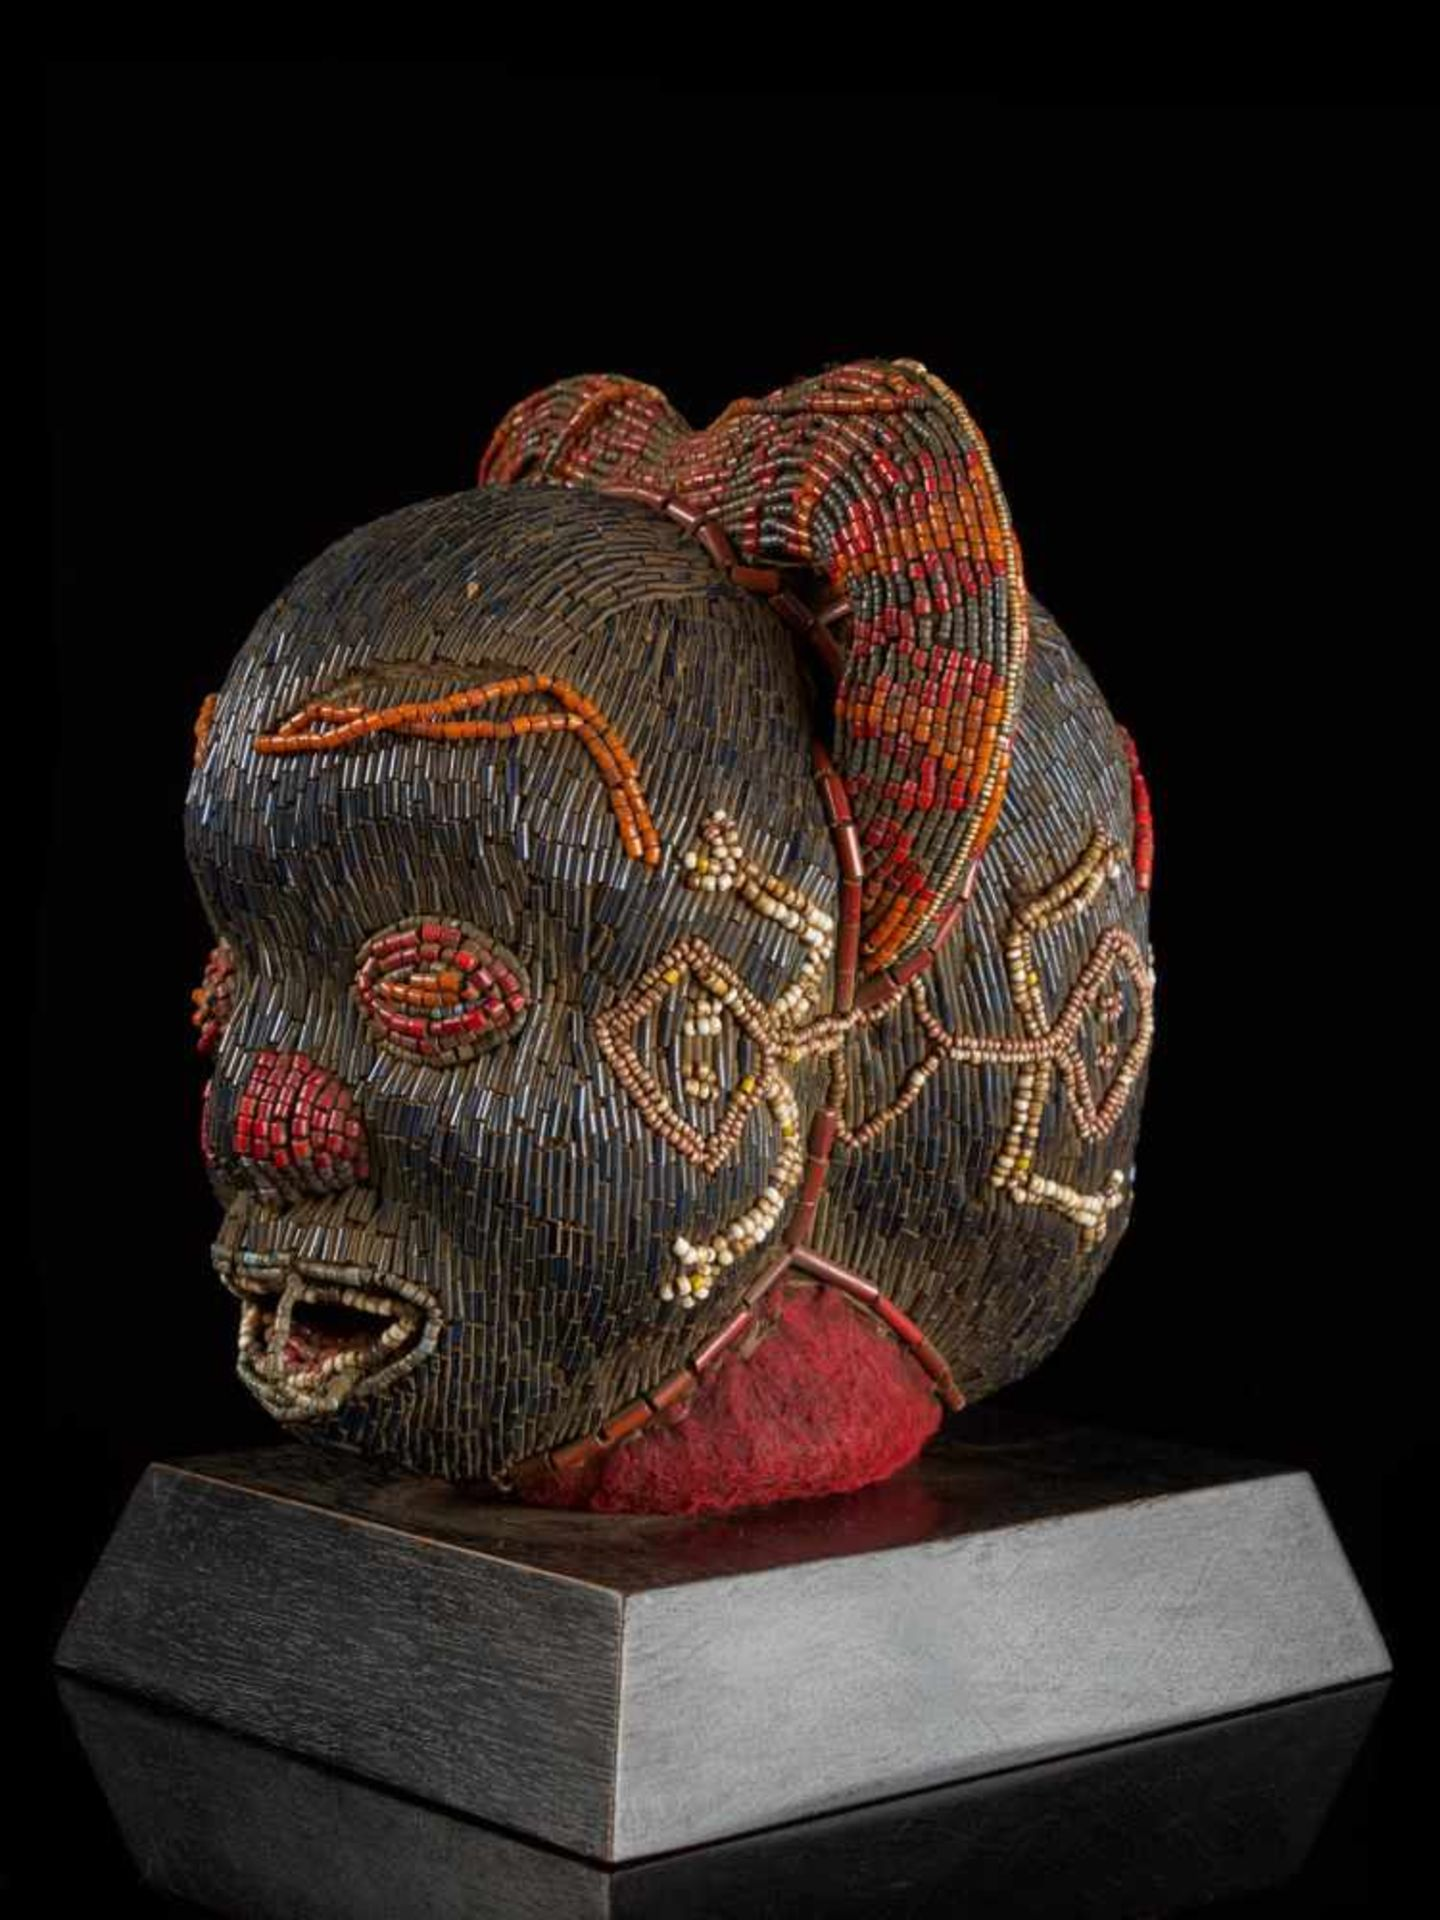 Beaded Janus Head Sculpture With Headdress - Tribal ArtThis beautiful two-faced head sculpture is - Bild 3 aus 6